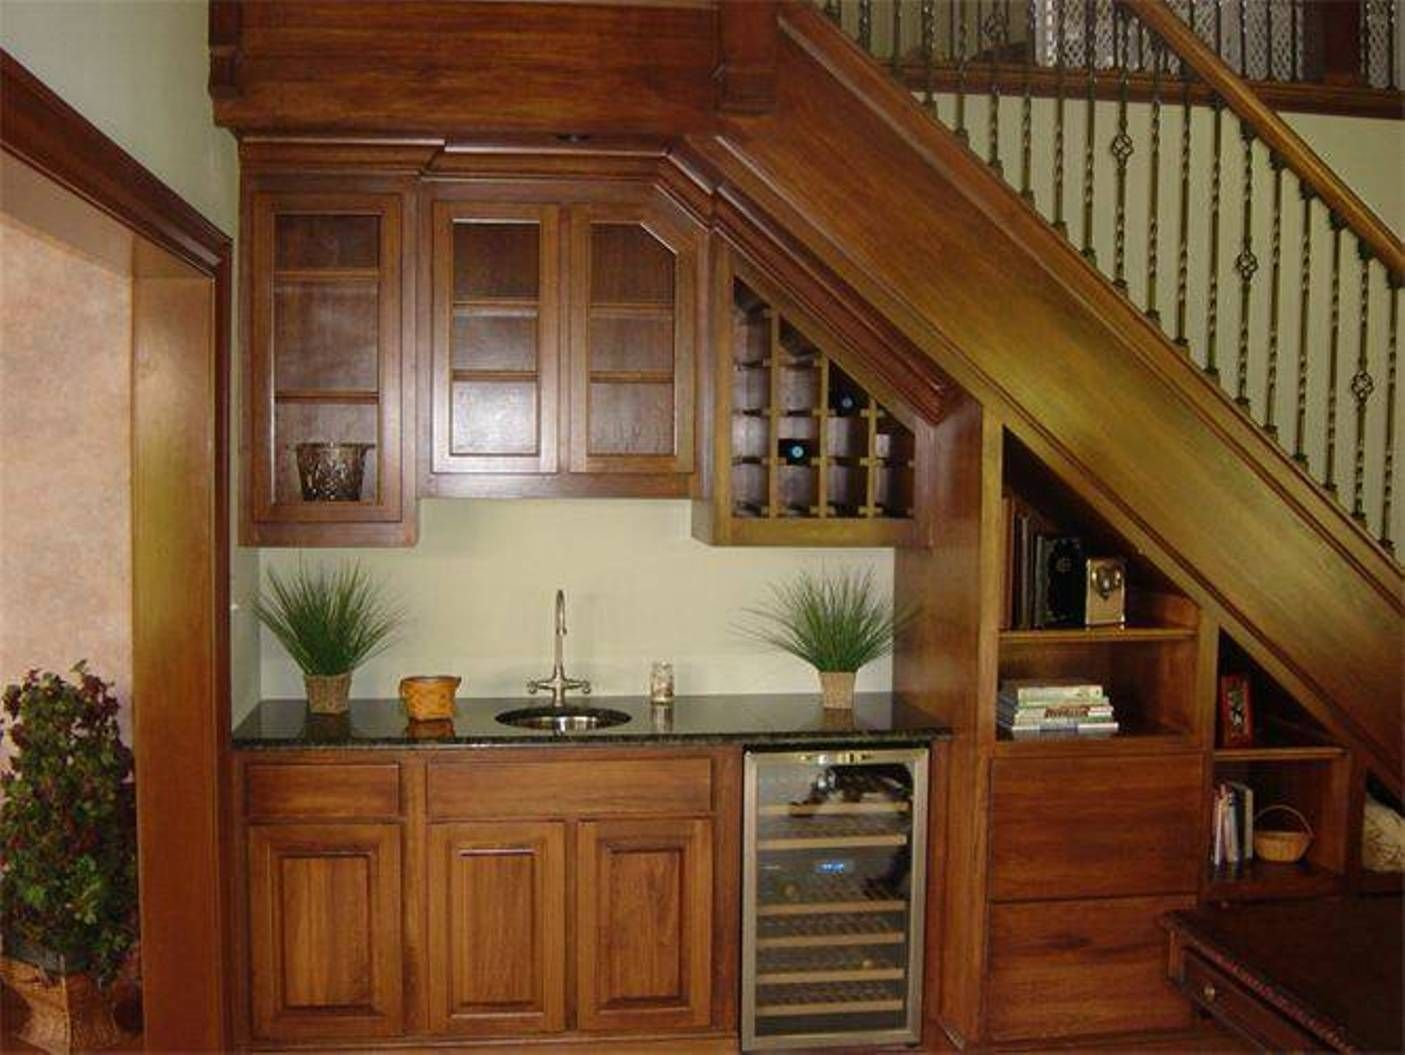 Best Home Design And Decor Under Stair Design With Mini Bar 640 x 480